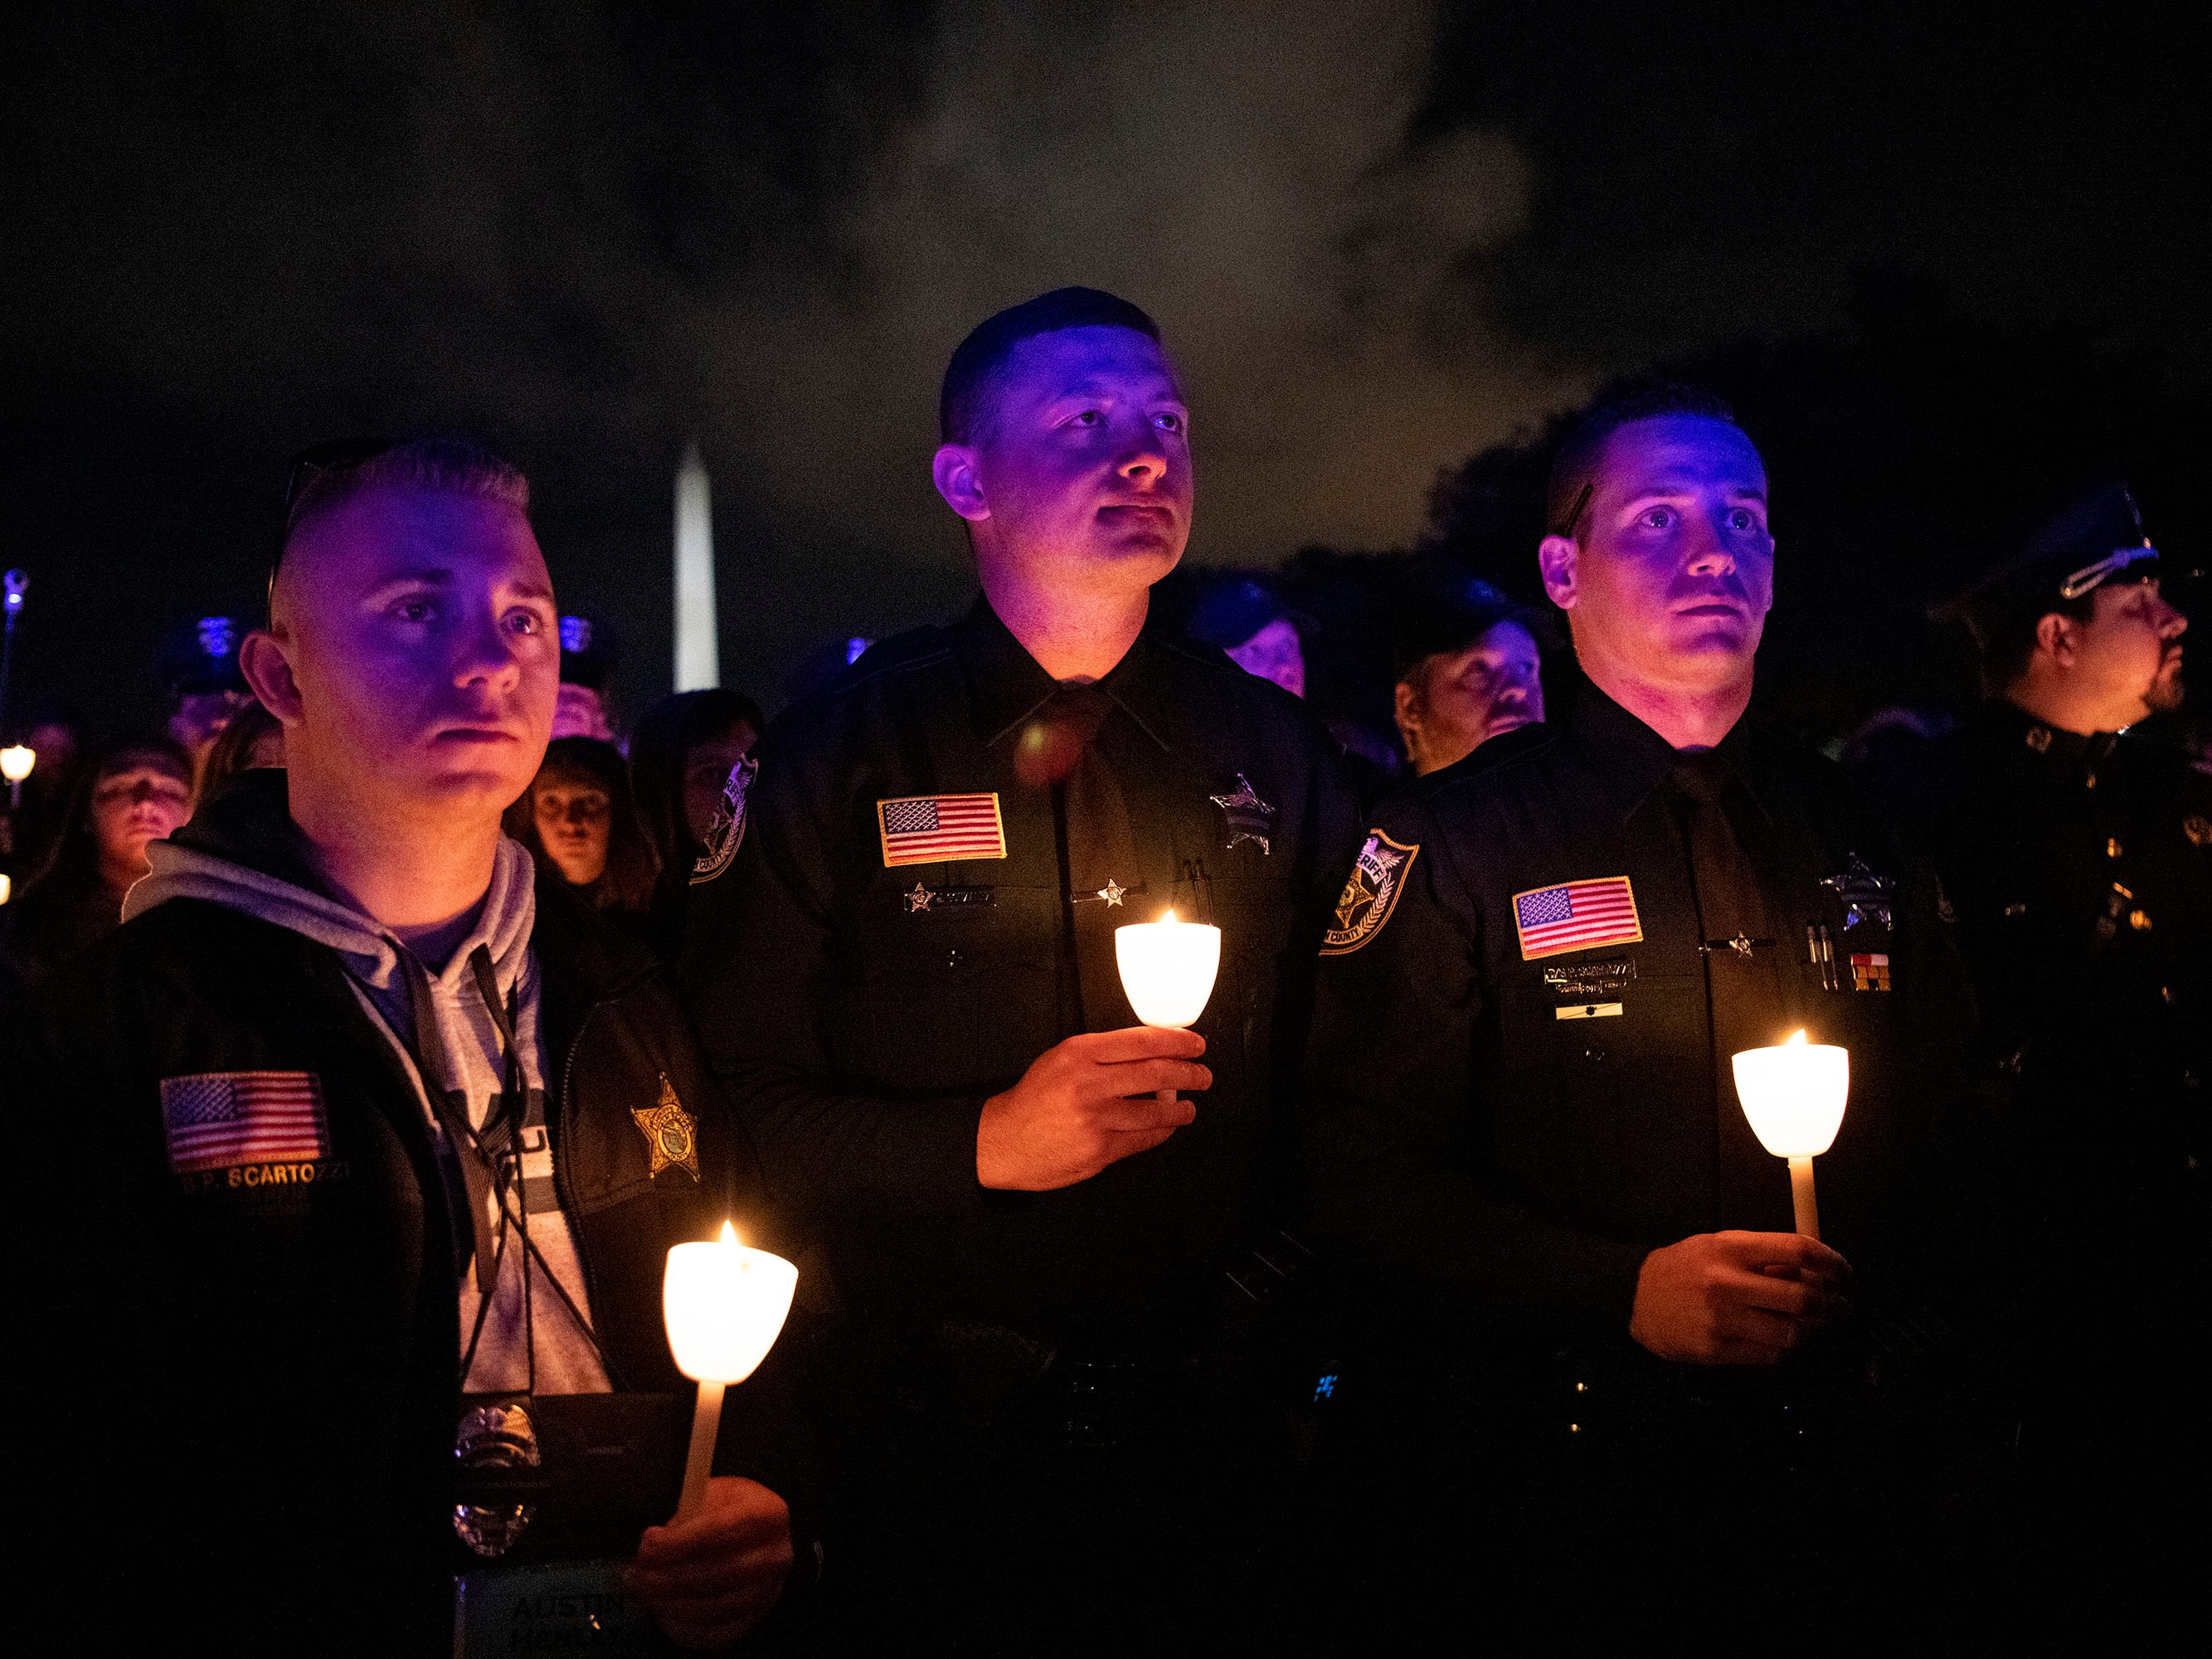 Austin Henley, left, Joshua Gonzalez and Patrick Scartozzi, all sheriff's deputies  in West Palm Beach, Florida, hold candles on the National Mall in Washington, DC during a candlelight vigil to honor slain law enforcement officers as part of Police Week in the nation's capital.